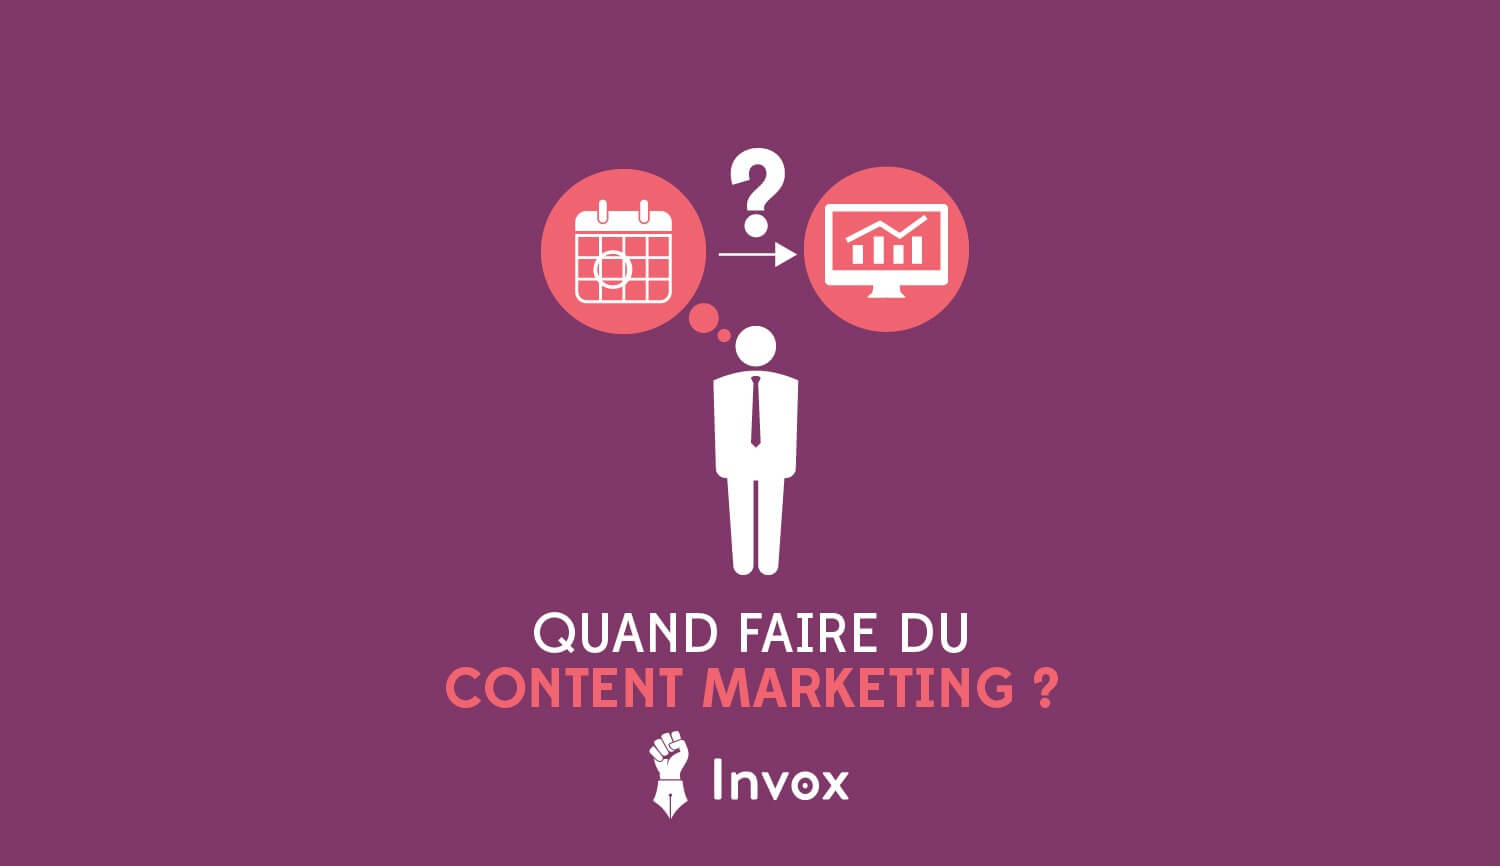 quand-faire-du-content-marketing-invox